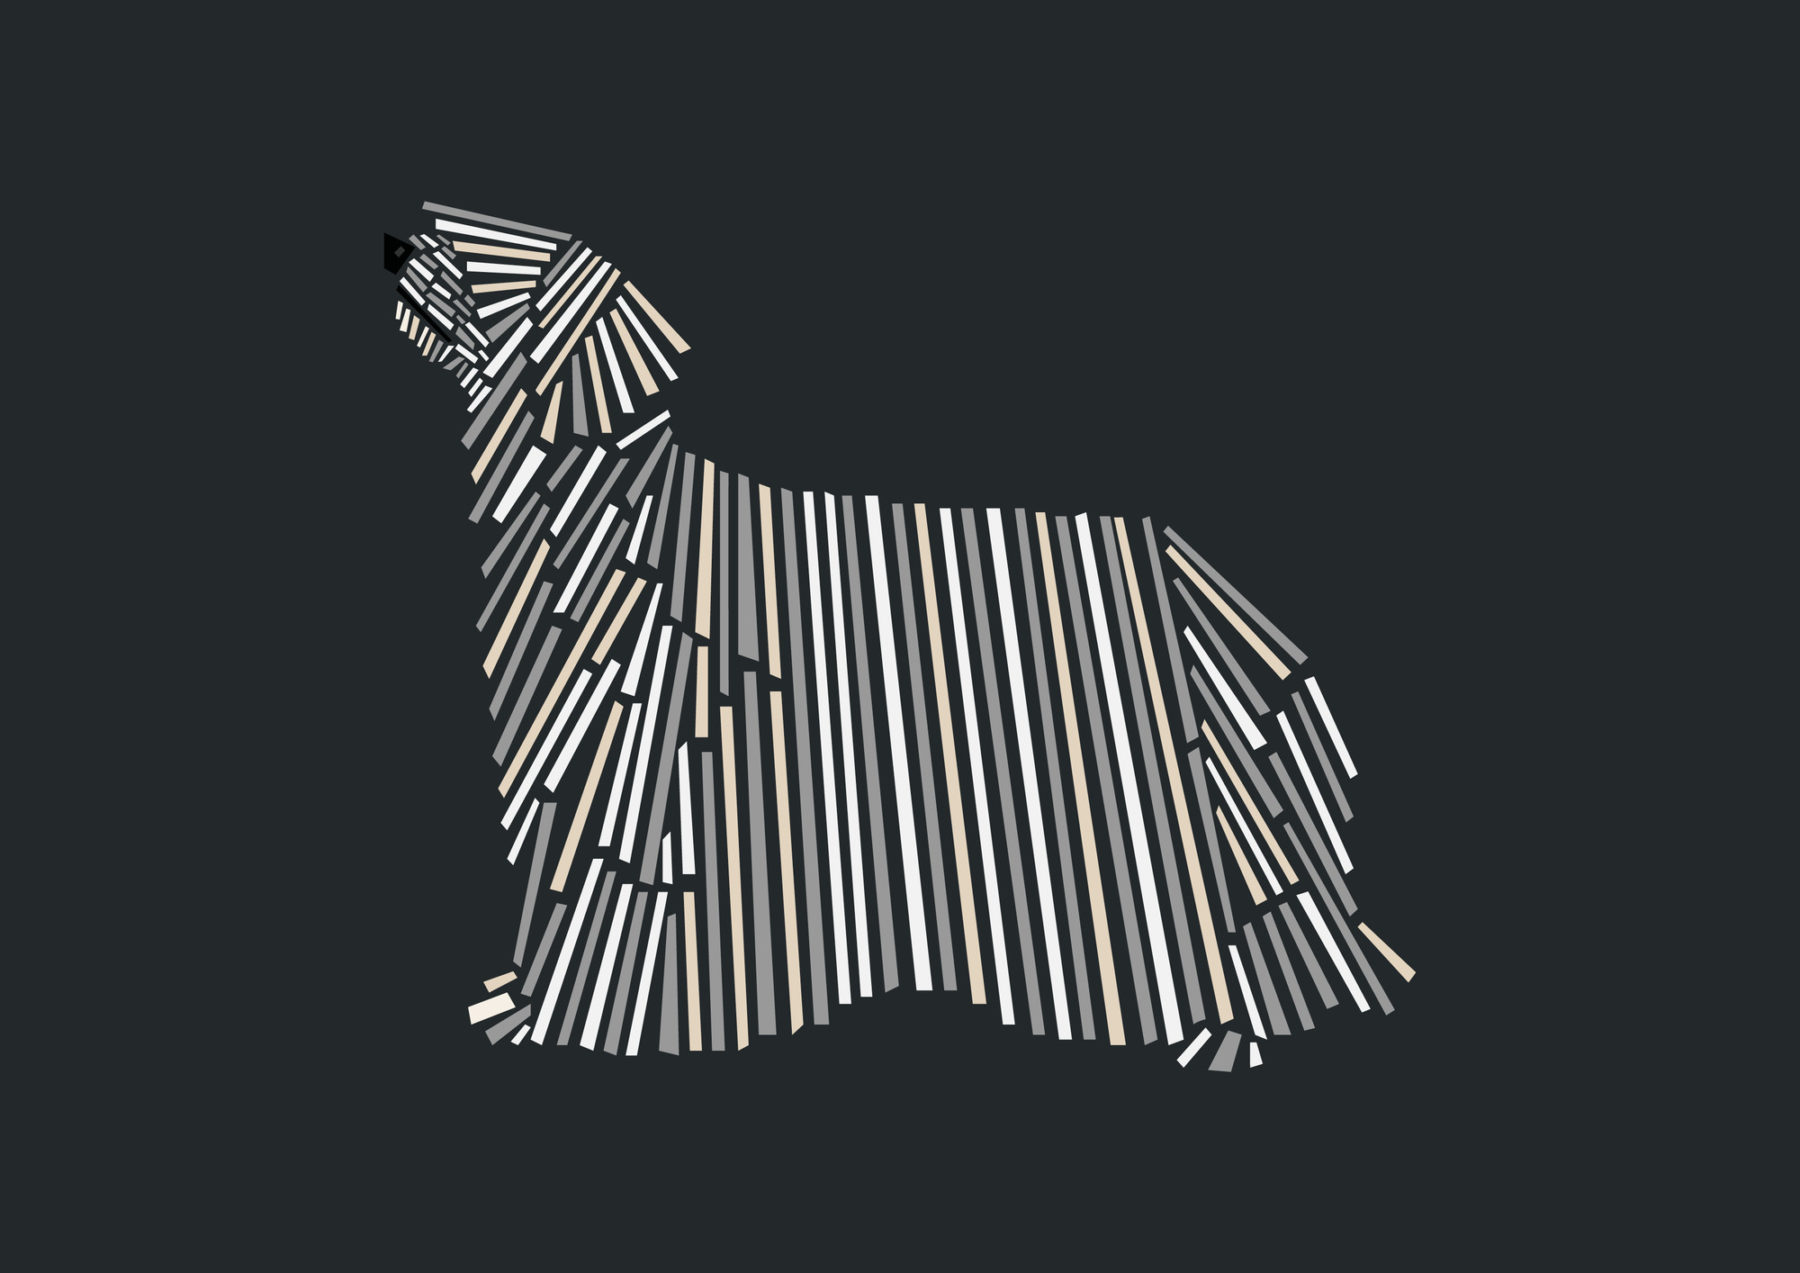 naomi turco Fifty dogs with graphic lines 23